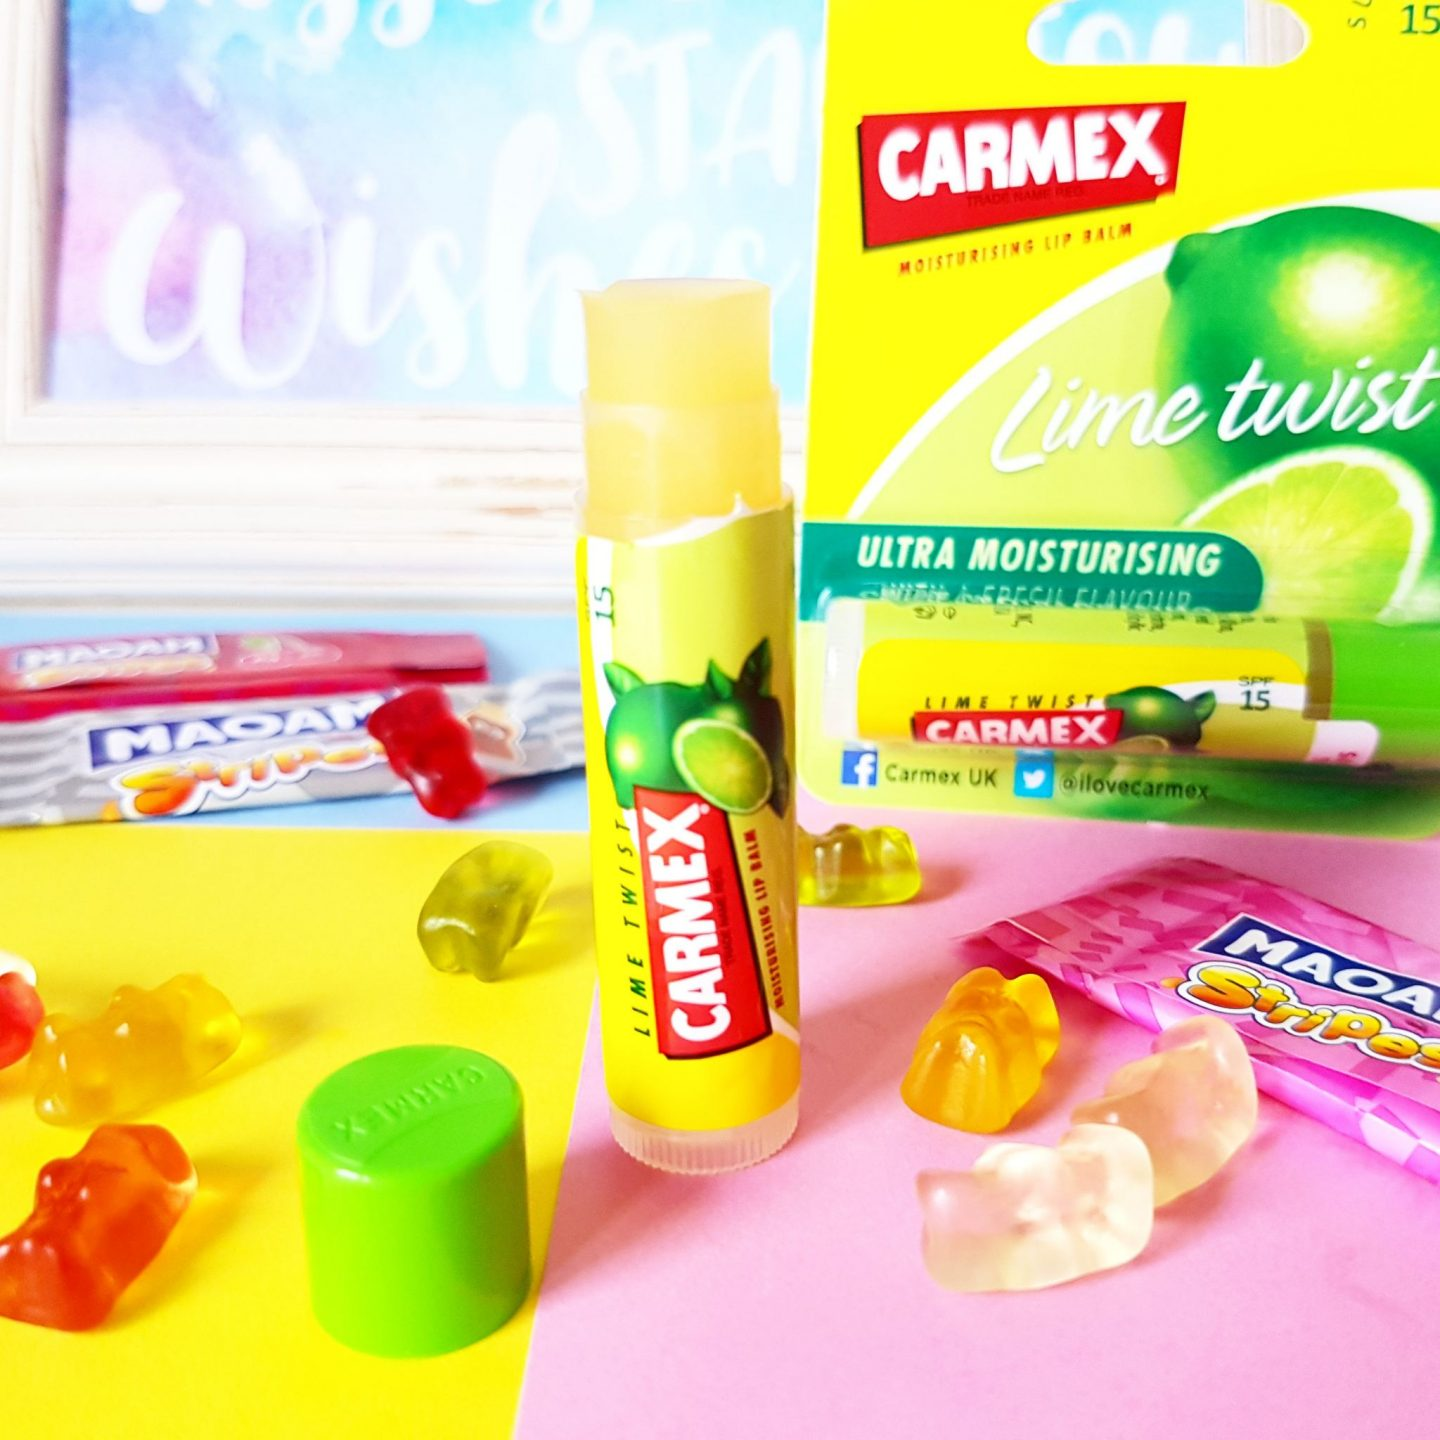 Carmex Ultra Moisturising Lip Balm | A Much Loved with a New Lime Twist